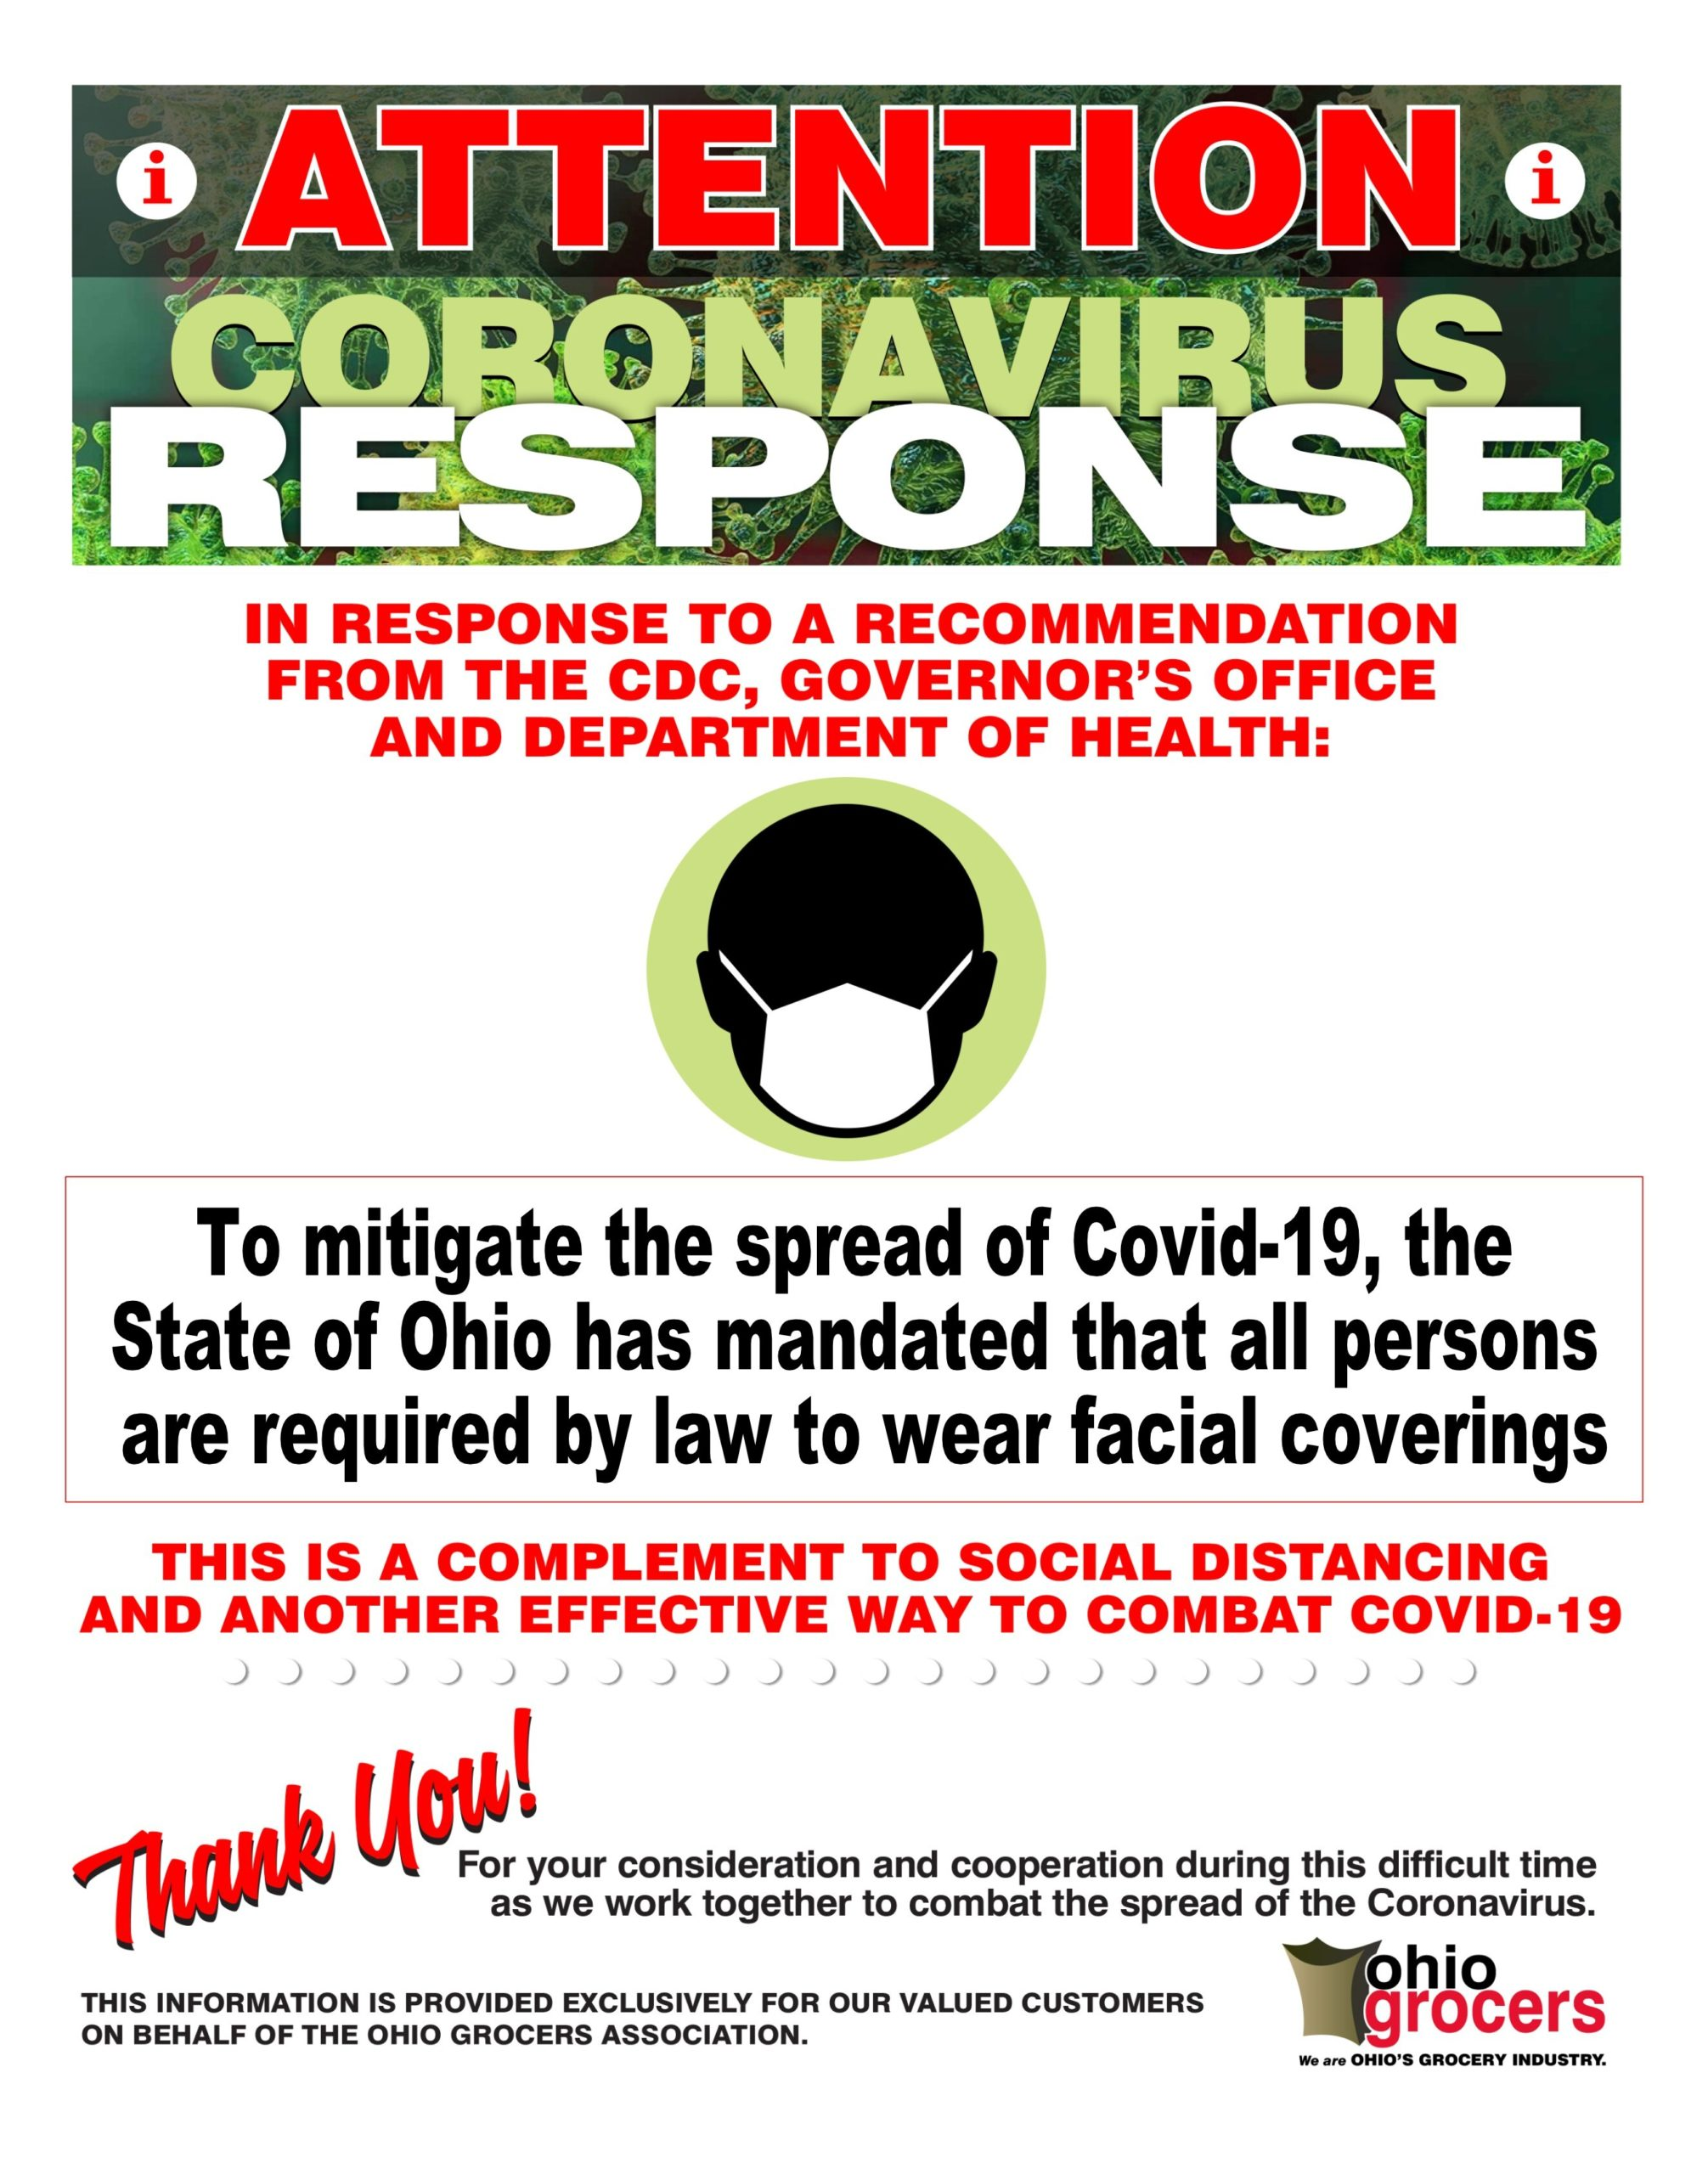 To mitigate the spread of COVID-19, the Sate of Ohio has mandated that all persons are required by law to wear facial coverings. This is a compliment to social distancing and another effective way to combat COVID-19.